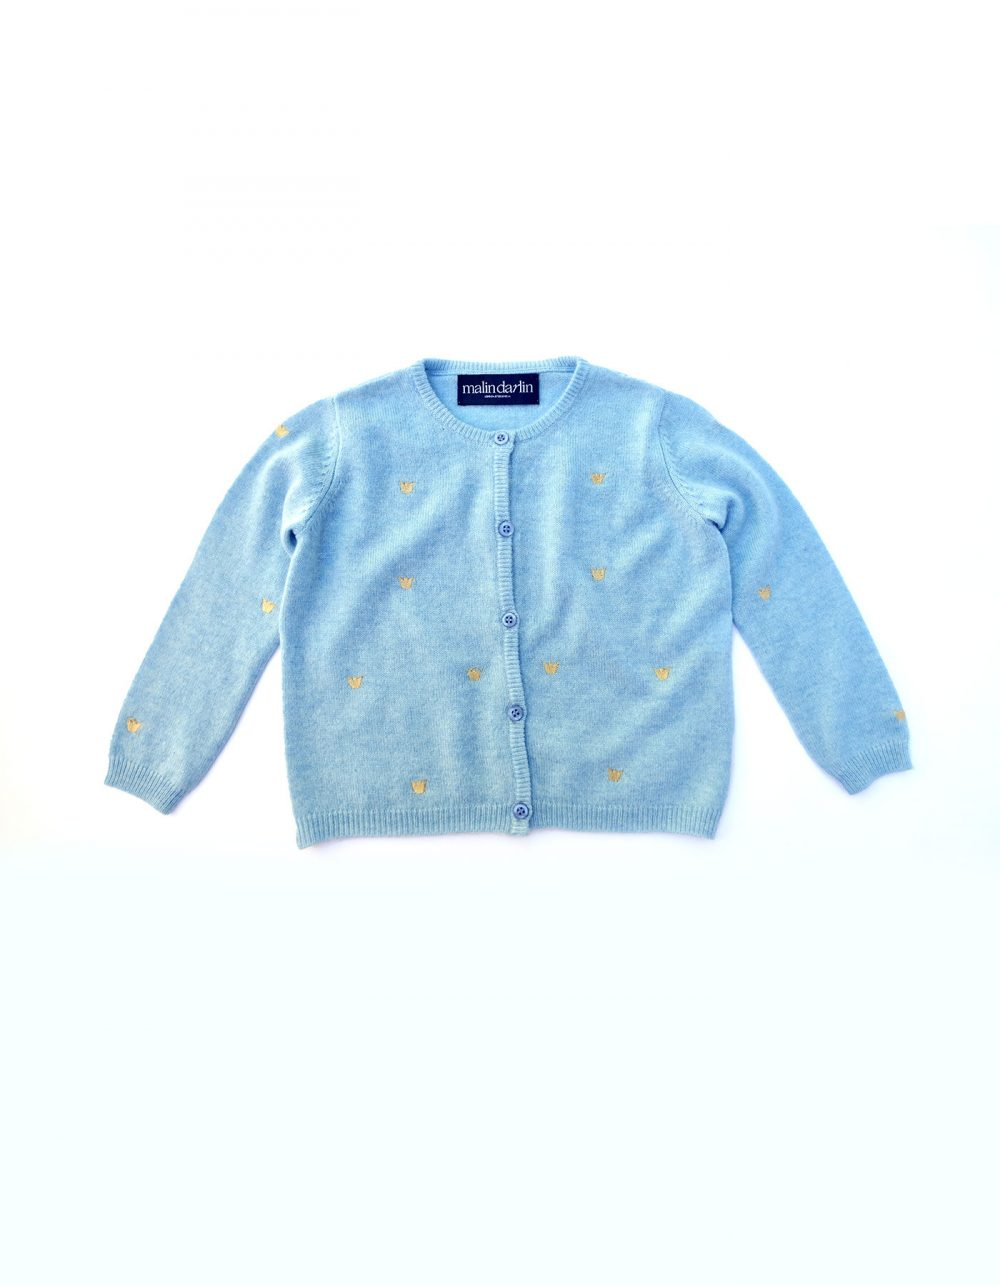 Baby Cashmere Cardigan by Malin Darlin